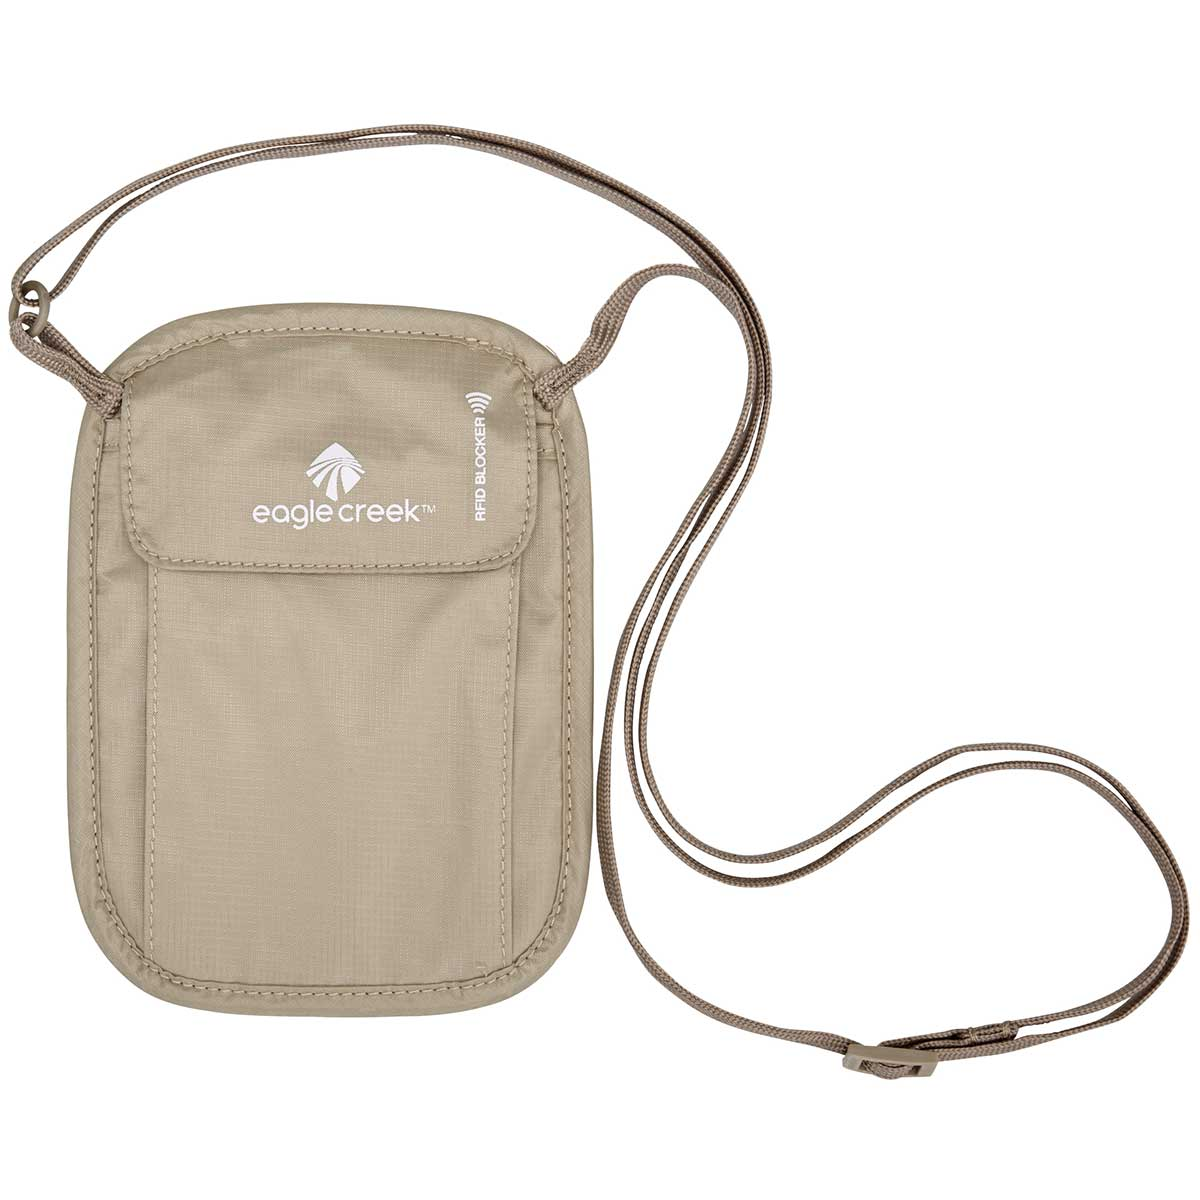 Eagle Creek RFID Blocker Neck Wallet in Tan